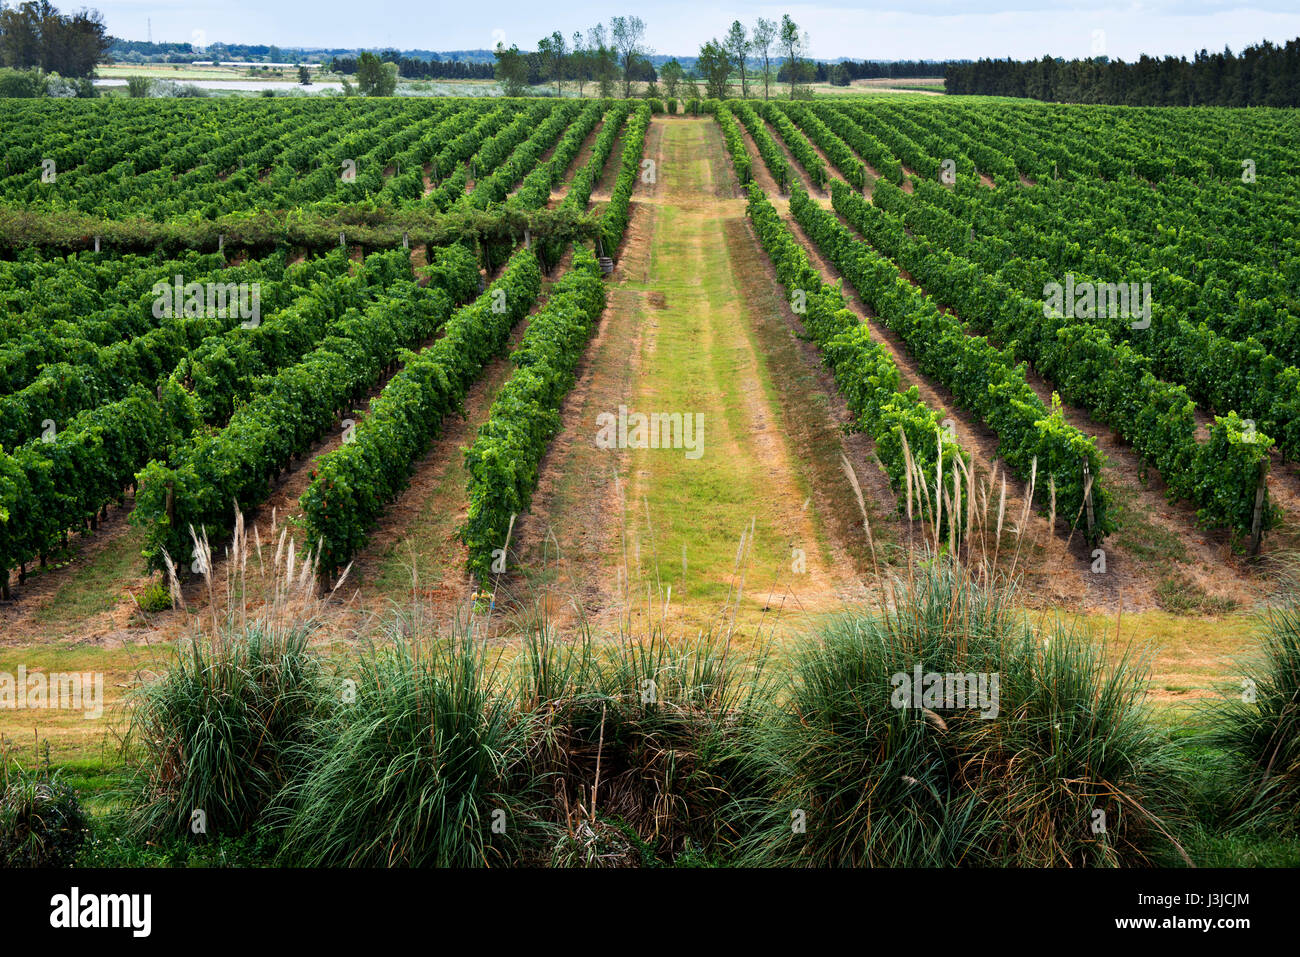 Vineyards in Fall Colors, Juanico Winery, Uruguay's largest and most award-winning Winery 38km North of of Montevideo, - Stock Image